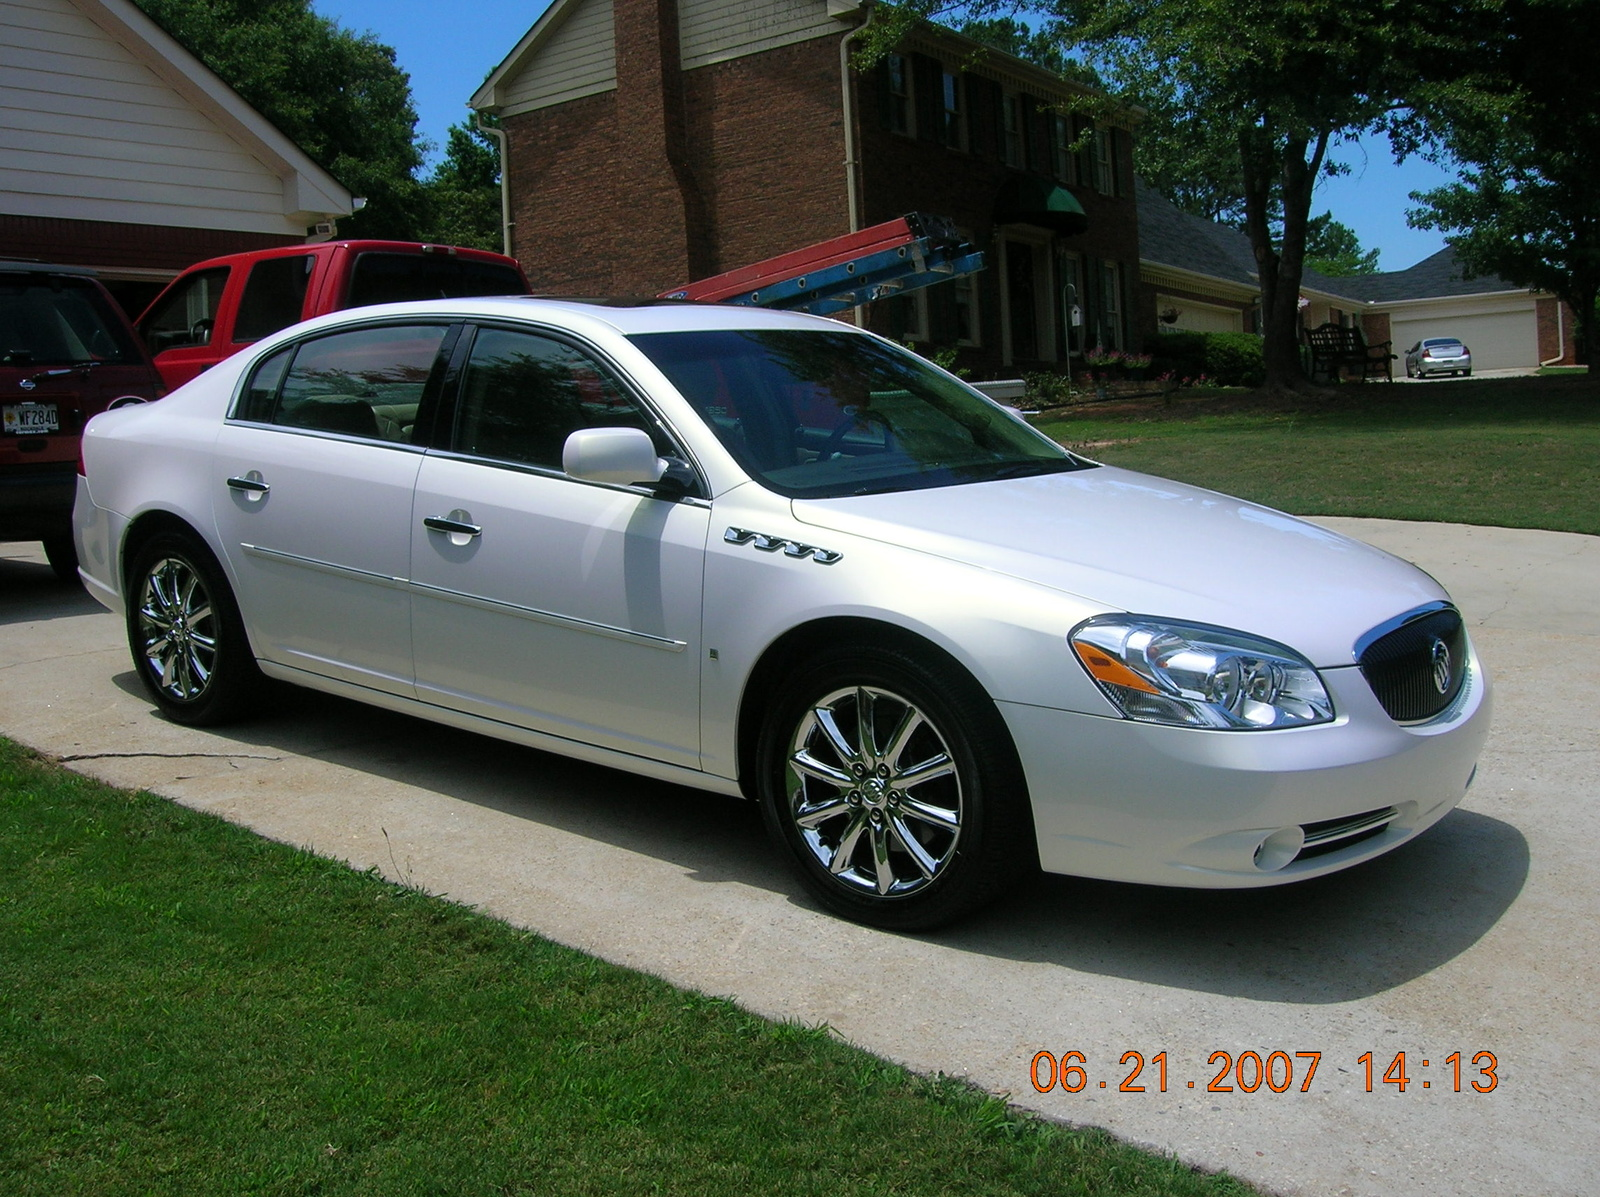 Buick Lucerne photo 06